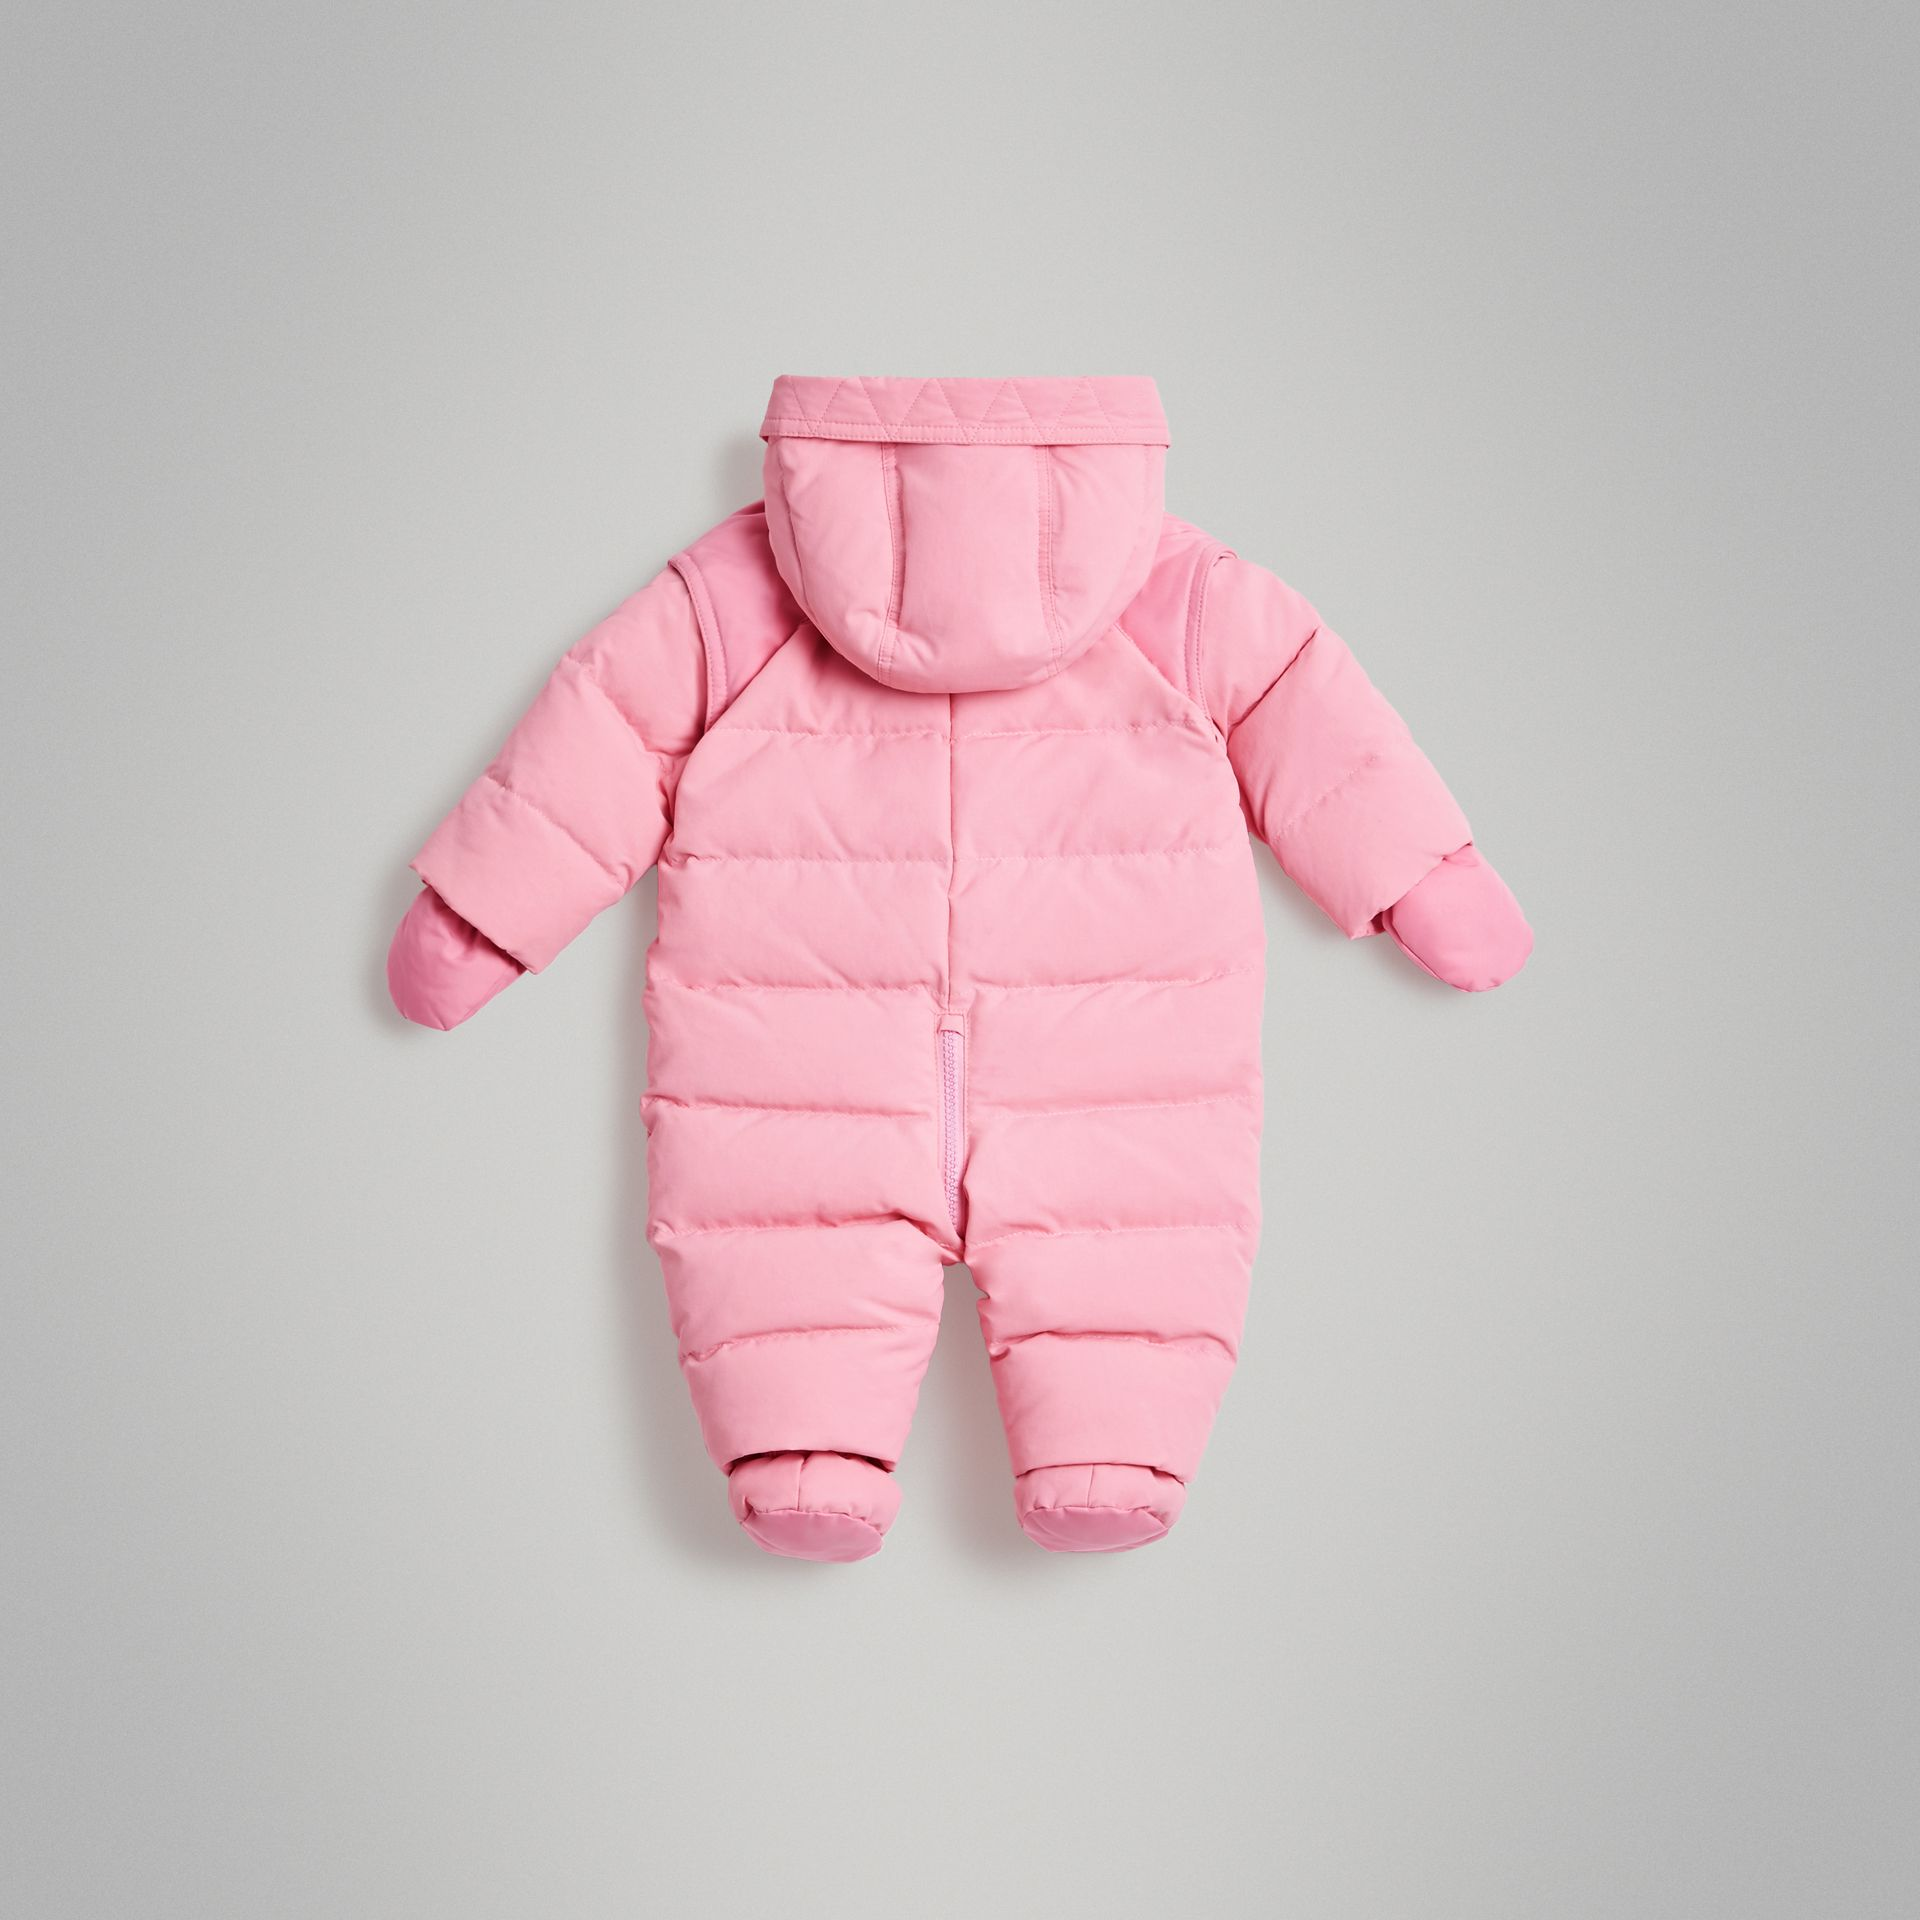 Down-filled Puffer Suit in Ice Pink - Children | Burberry - gallery image 3